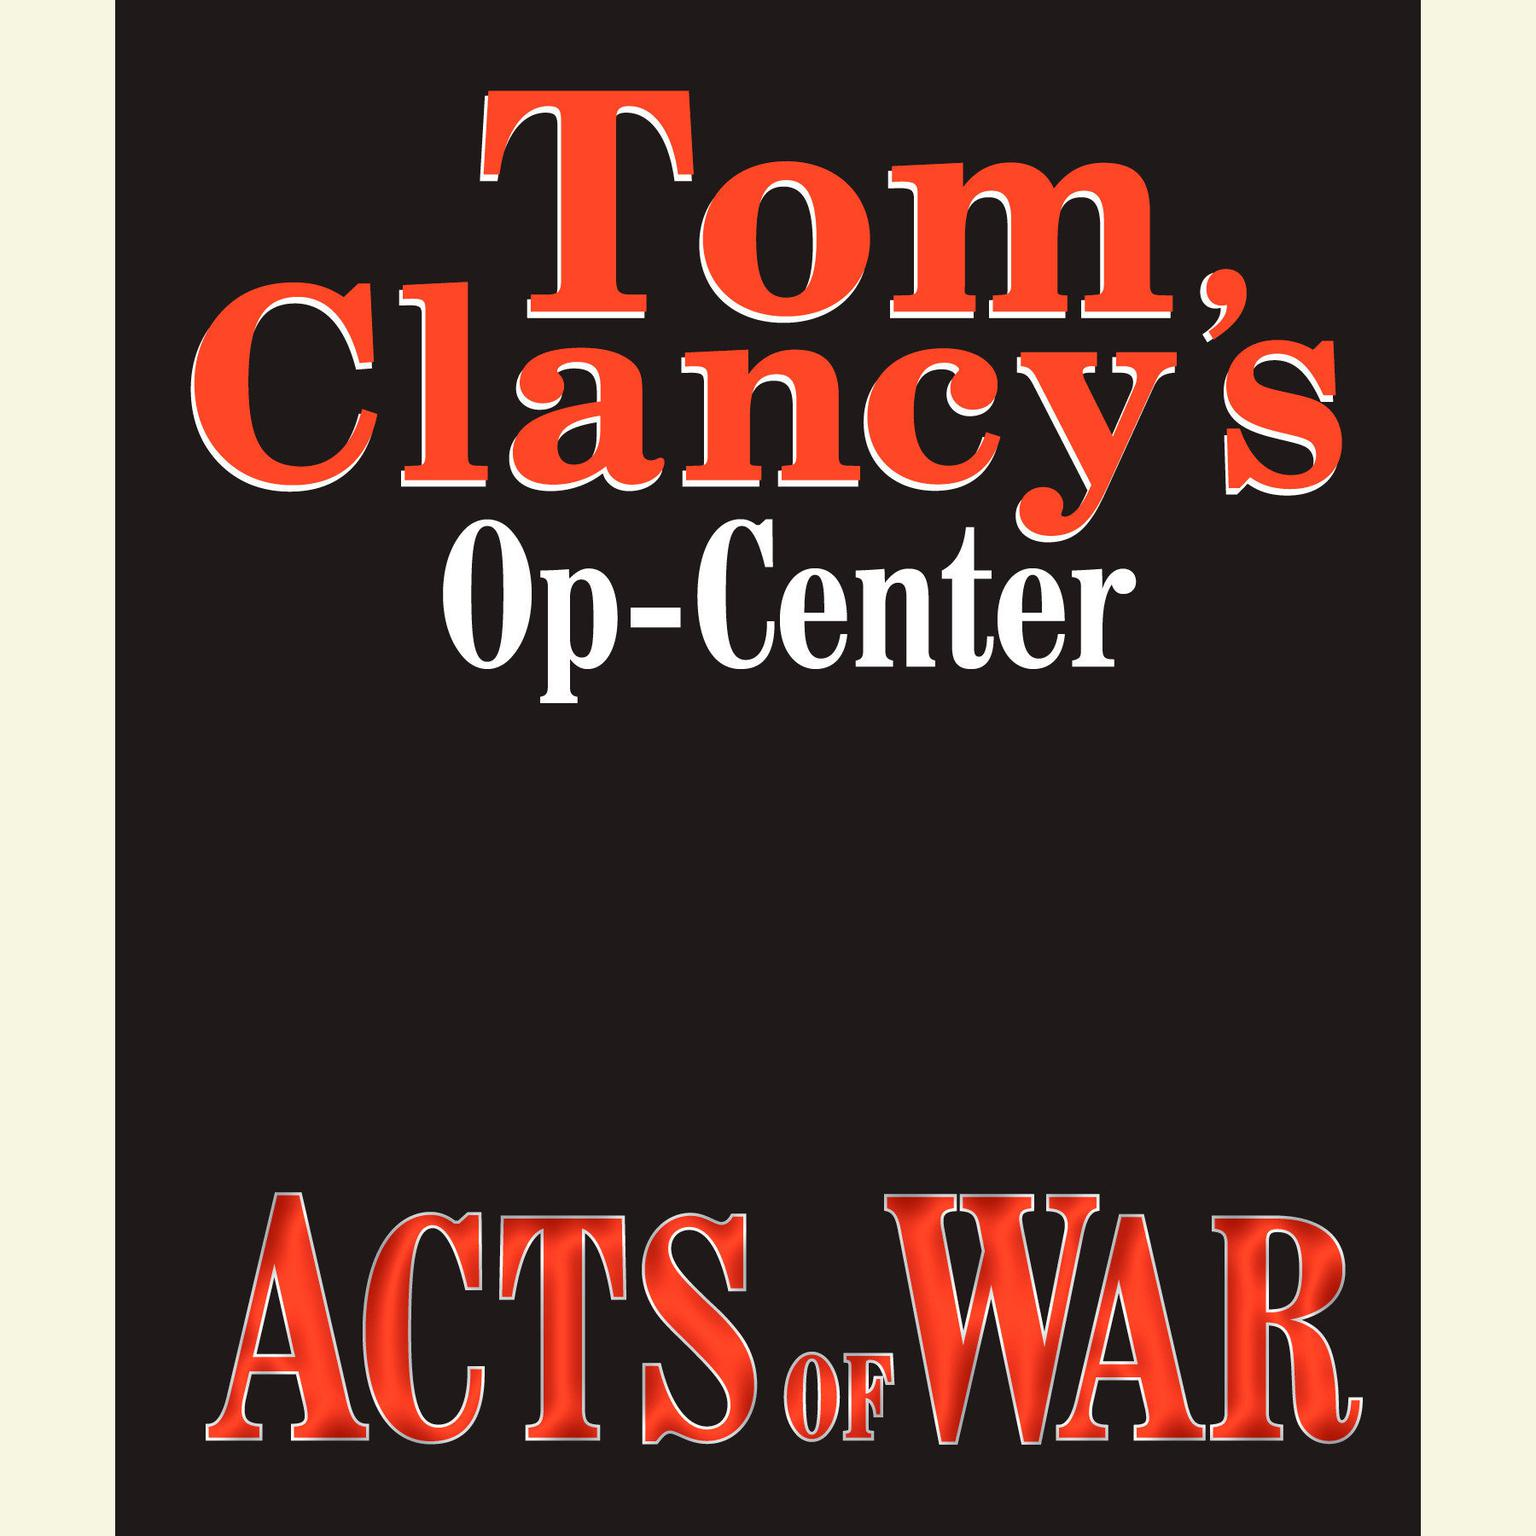 Printable Tom Clancy's Op-Center #4: Acts of War Audiobook Cover Art